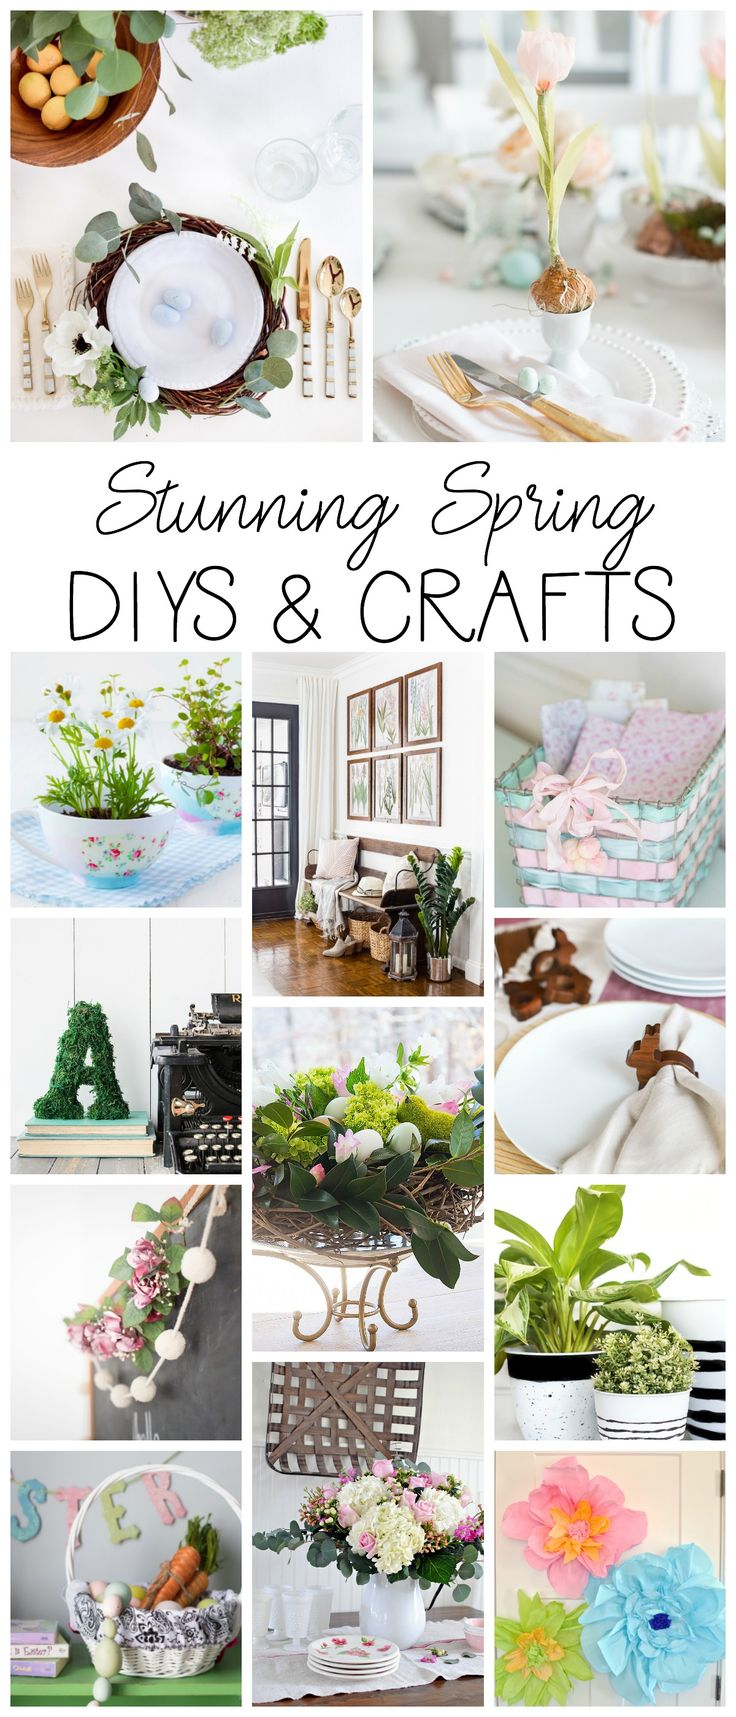 Easy to make and beautiful spring crafts from your favorite design bloggers. See more on the blog at shabbyfufu.com #spring #crafts #diy #homedecor